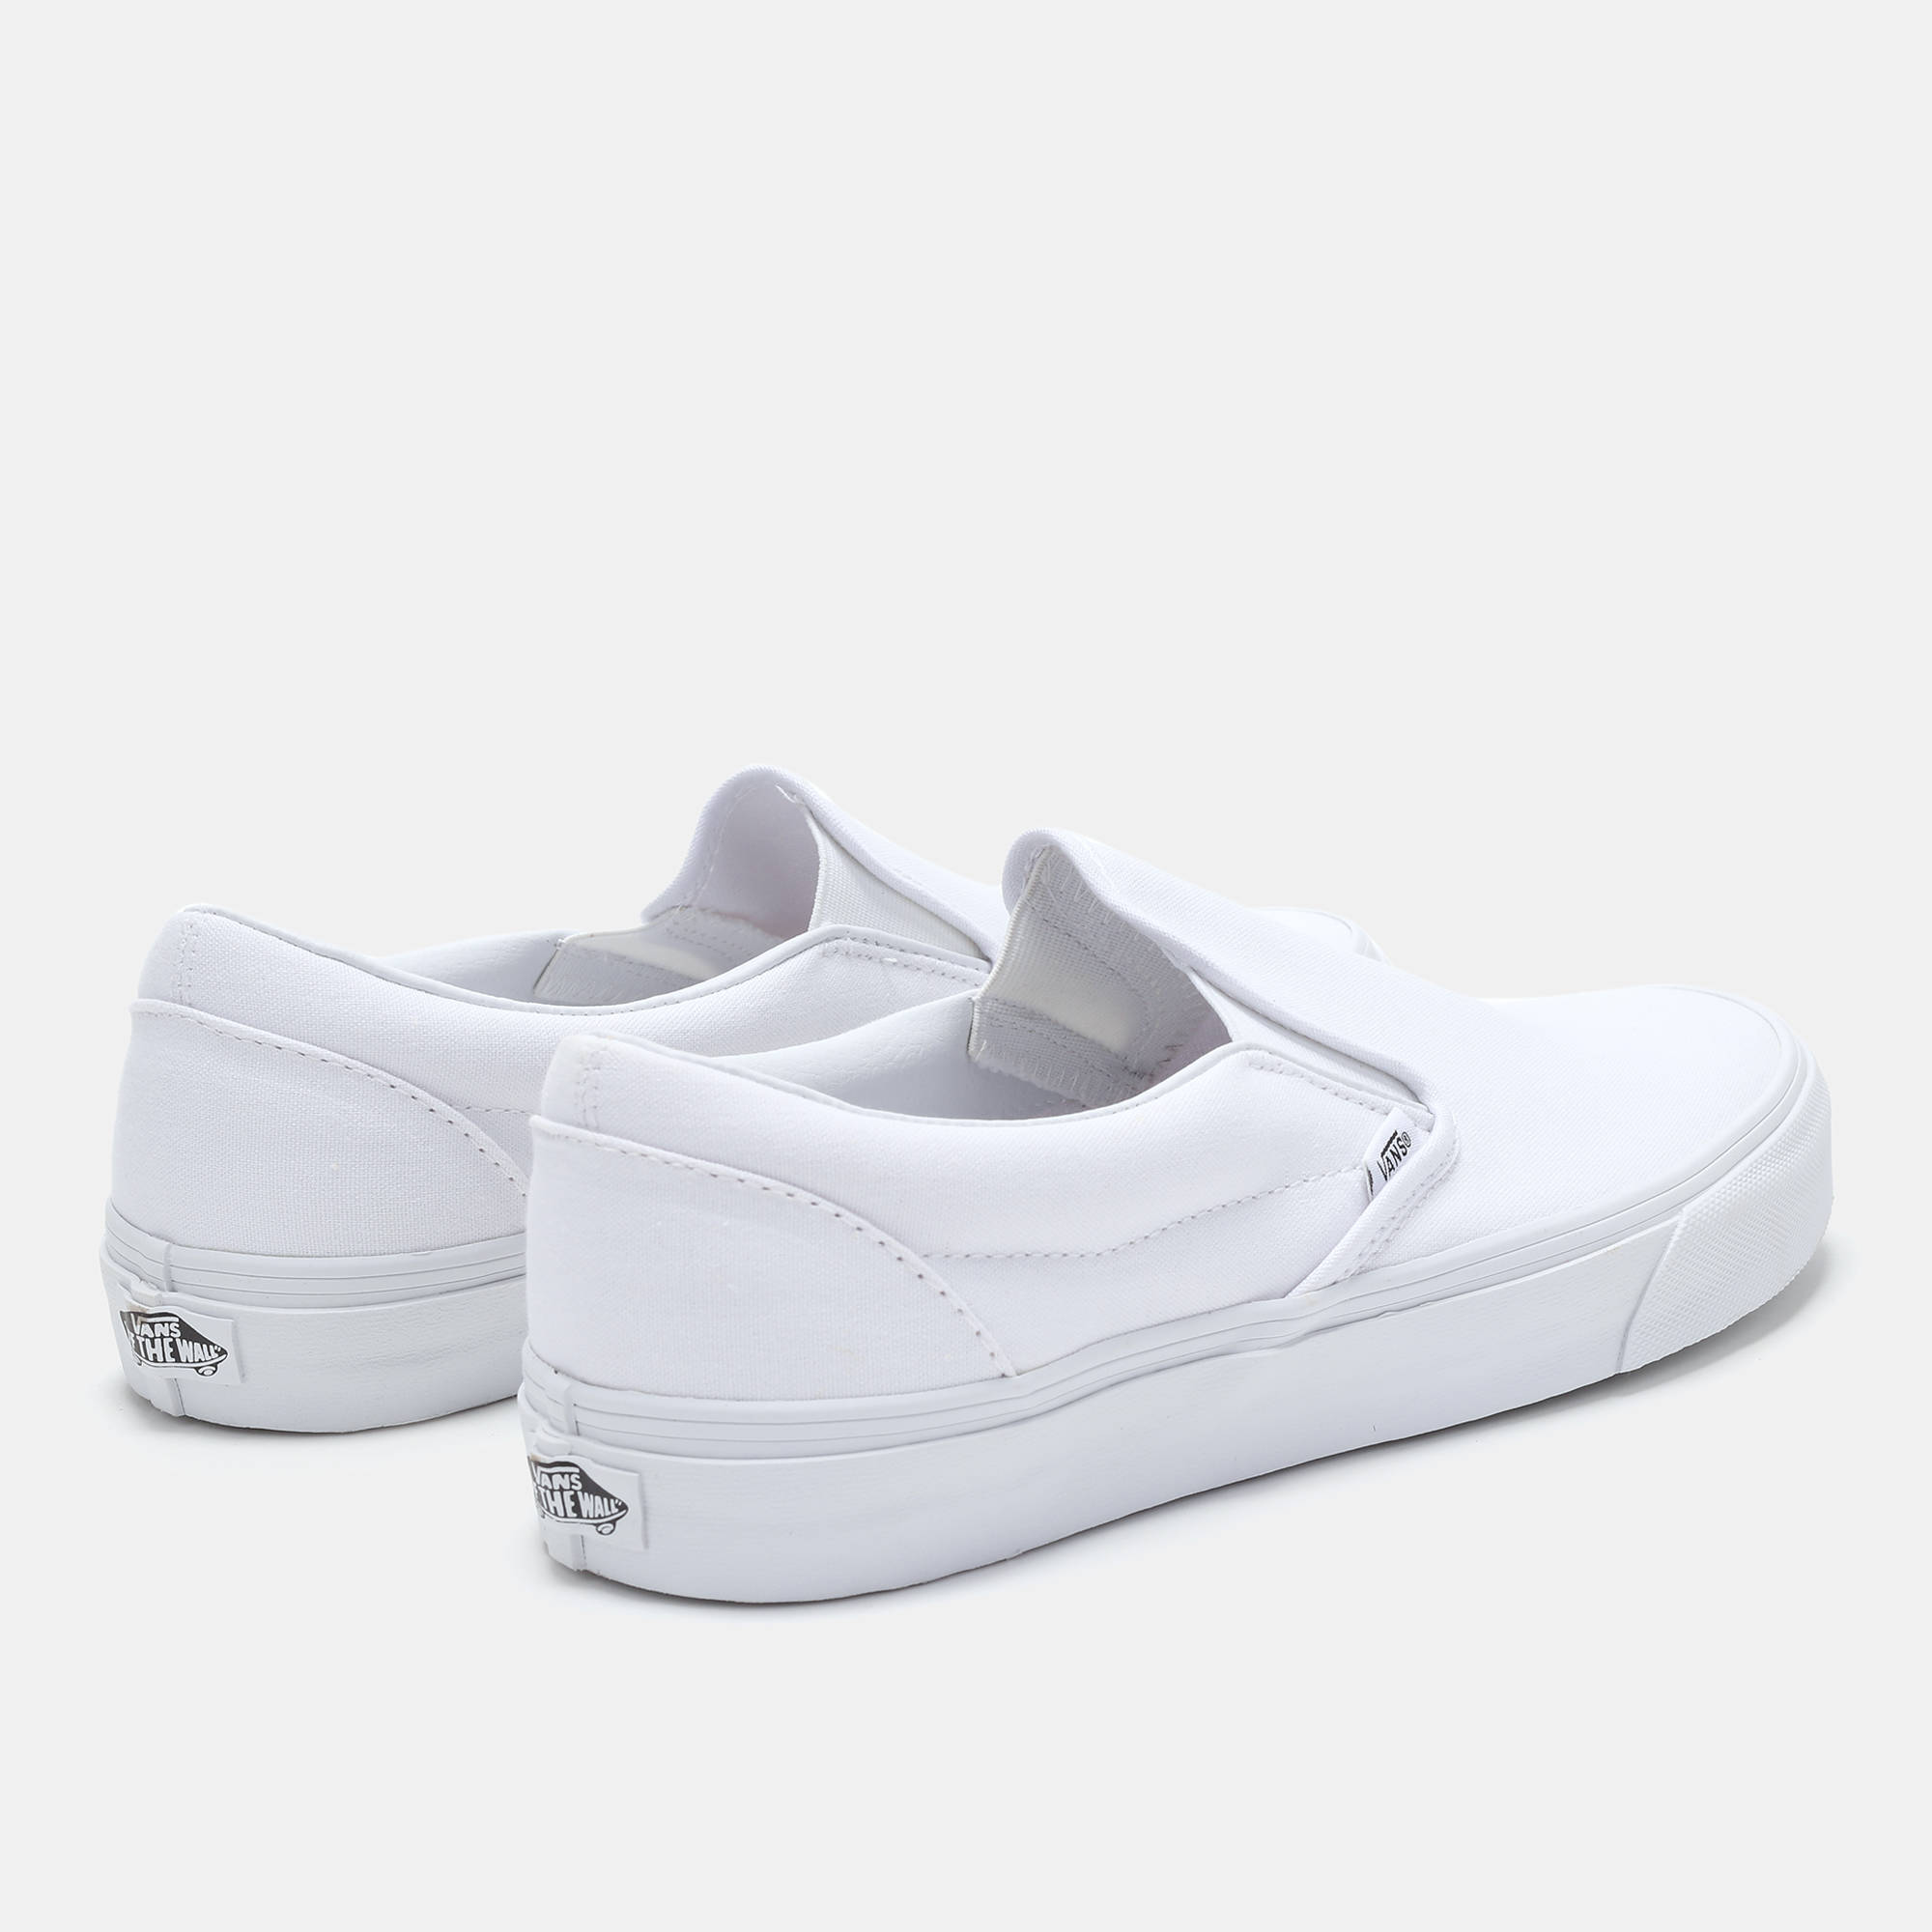 High Tops Vans | White Van Slip Ons | Vans Slip on Skate Shoe